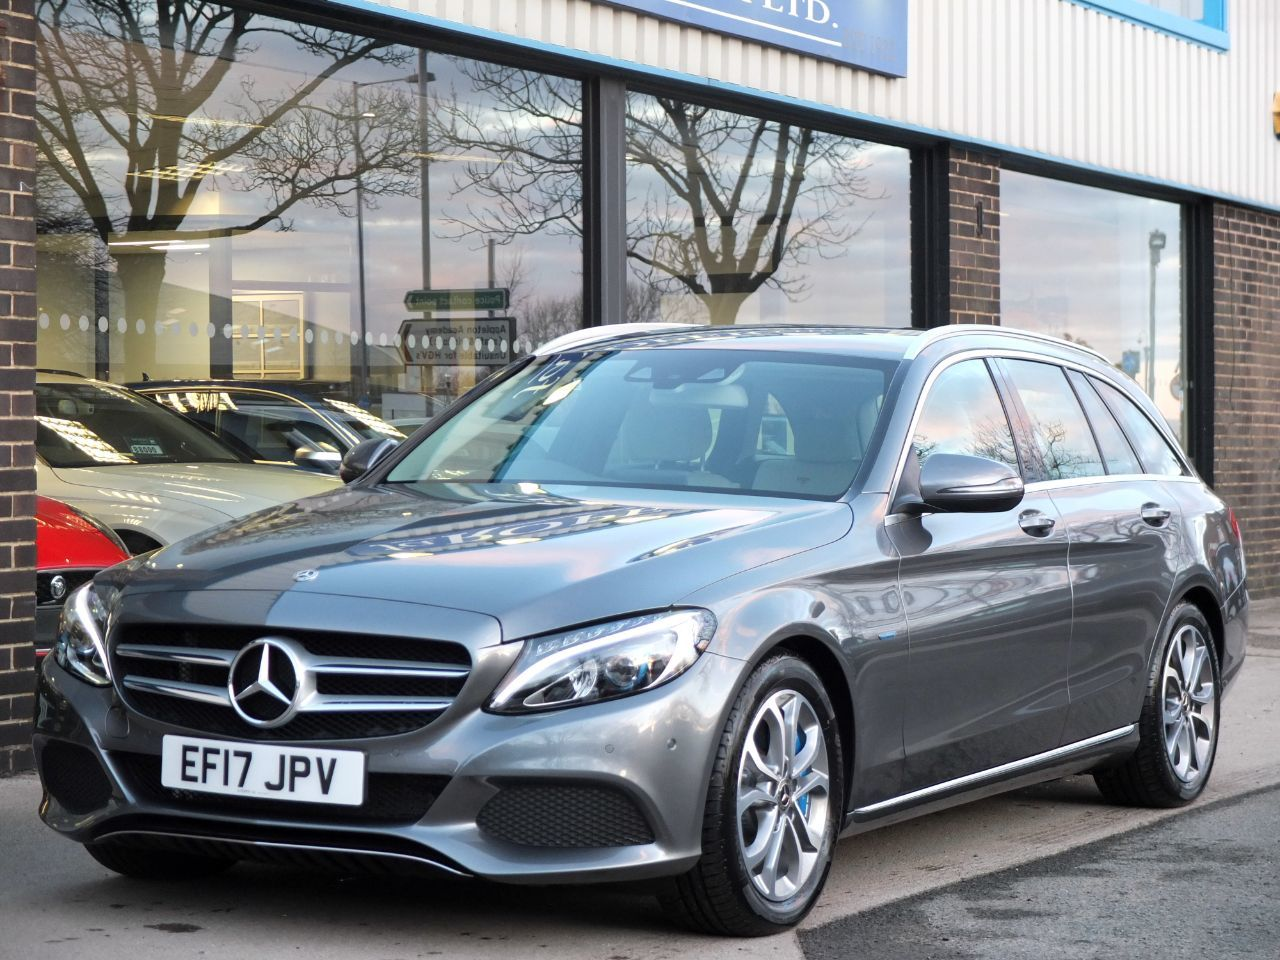 Mercedes-Benz C Class 2.0 Estate C350e Sport PHEV Auto Estate Petrol / Electric Hybrid Selenite Grey MetallicMercedes-Benz C Class 2.0 Estate C350e Sport PHEV Auto Estate Petrol / Electric Hybrid Selenite Grey Metallic at fa Roper Ltd Bradford